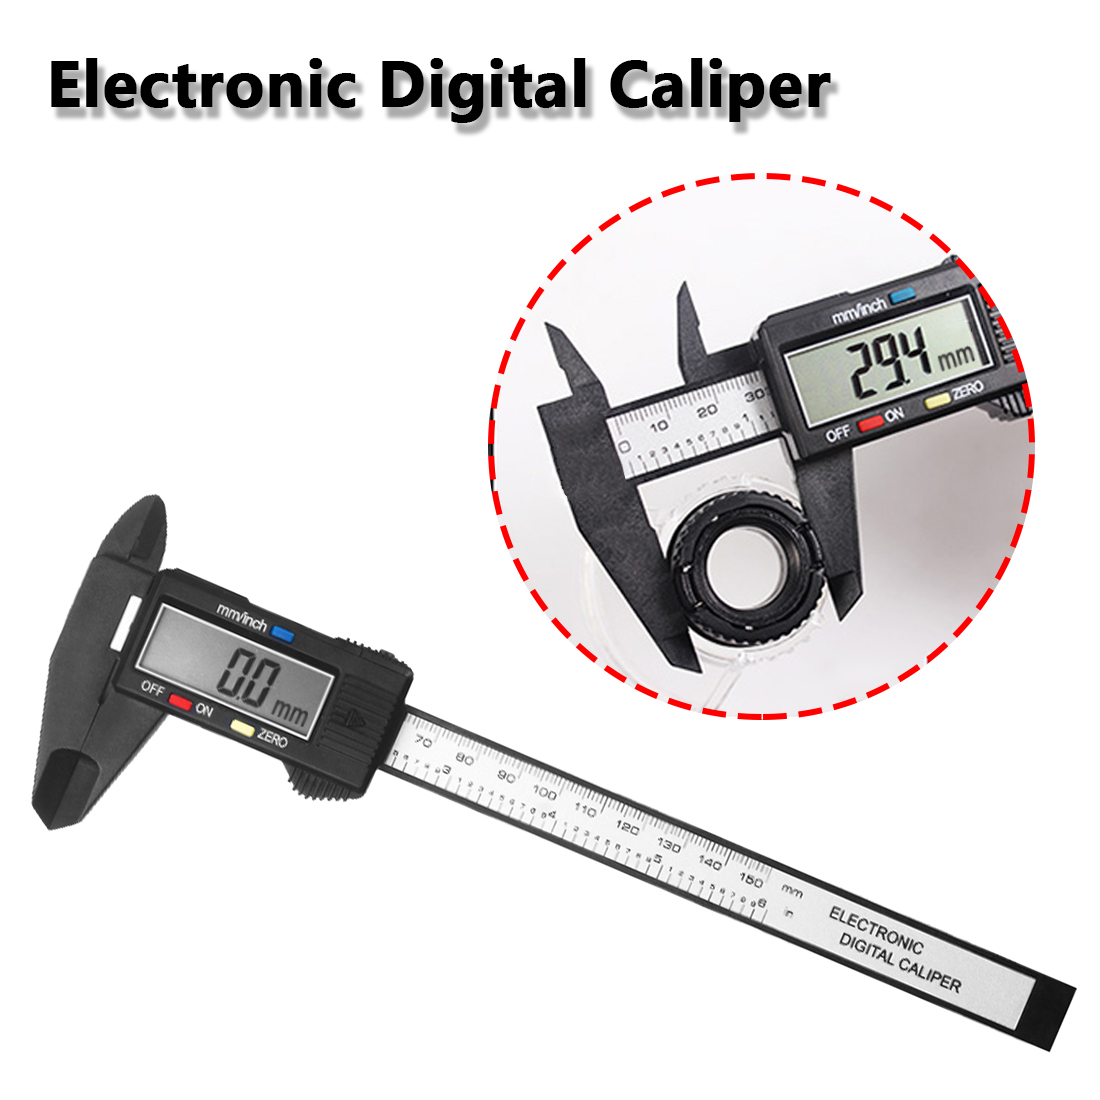 Carbon Fiber LCD Digital Electronic Vernier Caliper Gauge Micrometer Measuring Tool Ruler Digital Calipers 150mm 6inch